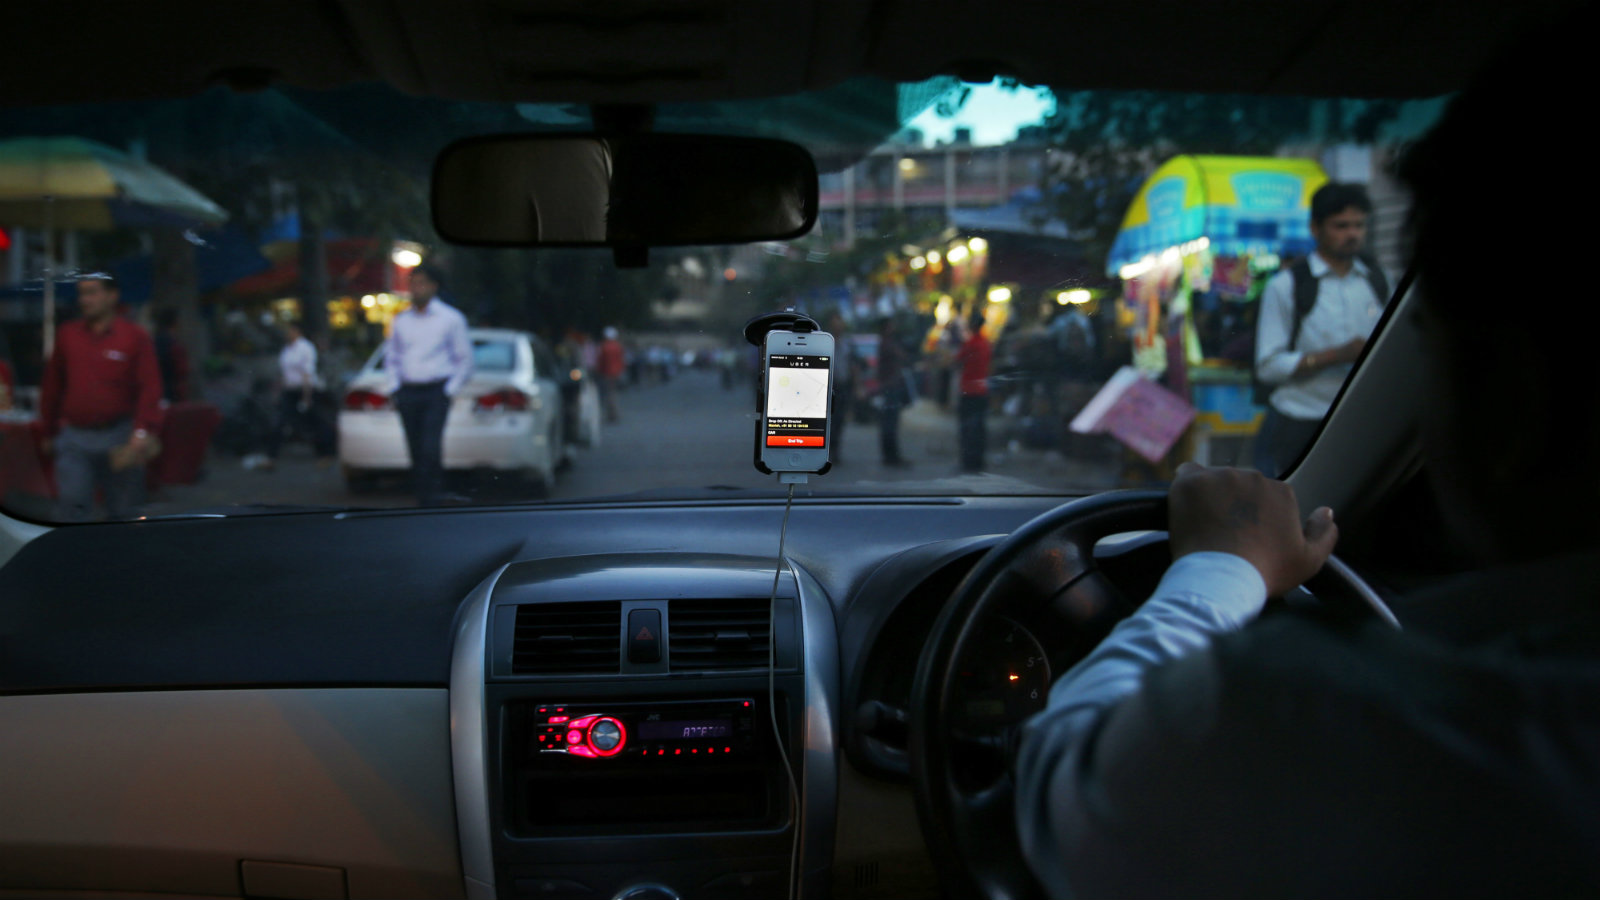 In this Wednesday, March 19, 2014 photo, an Uber taxi driver drives his car through a street in New Delhi, India. Riding on its startup success and flush with fresh capital, taxi-hailing smartphone app Uber is making a big push into Asia. The company has in the last year started operating in 18 cities in Asia and the South Pacific including Seoul, Shanghai, Bangkok, Hong Kong and five Indian cities.